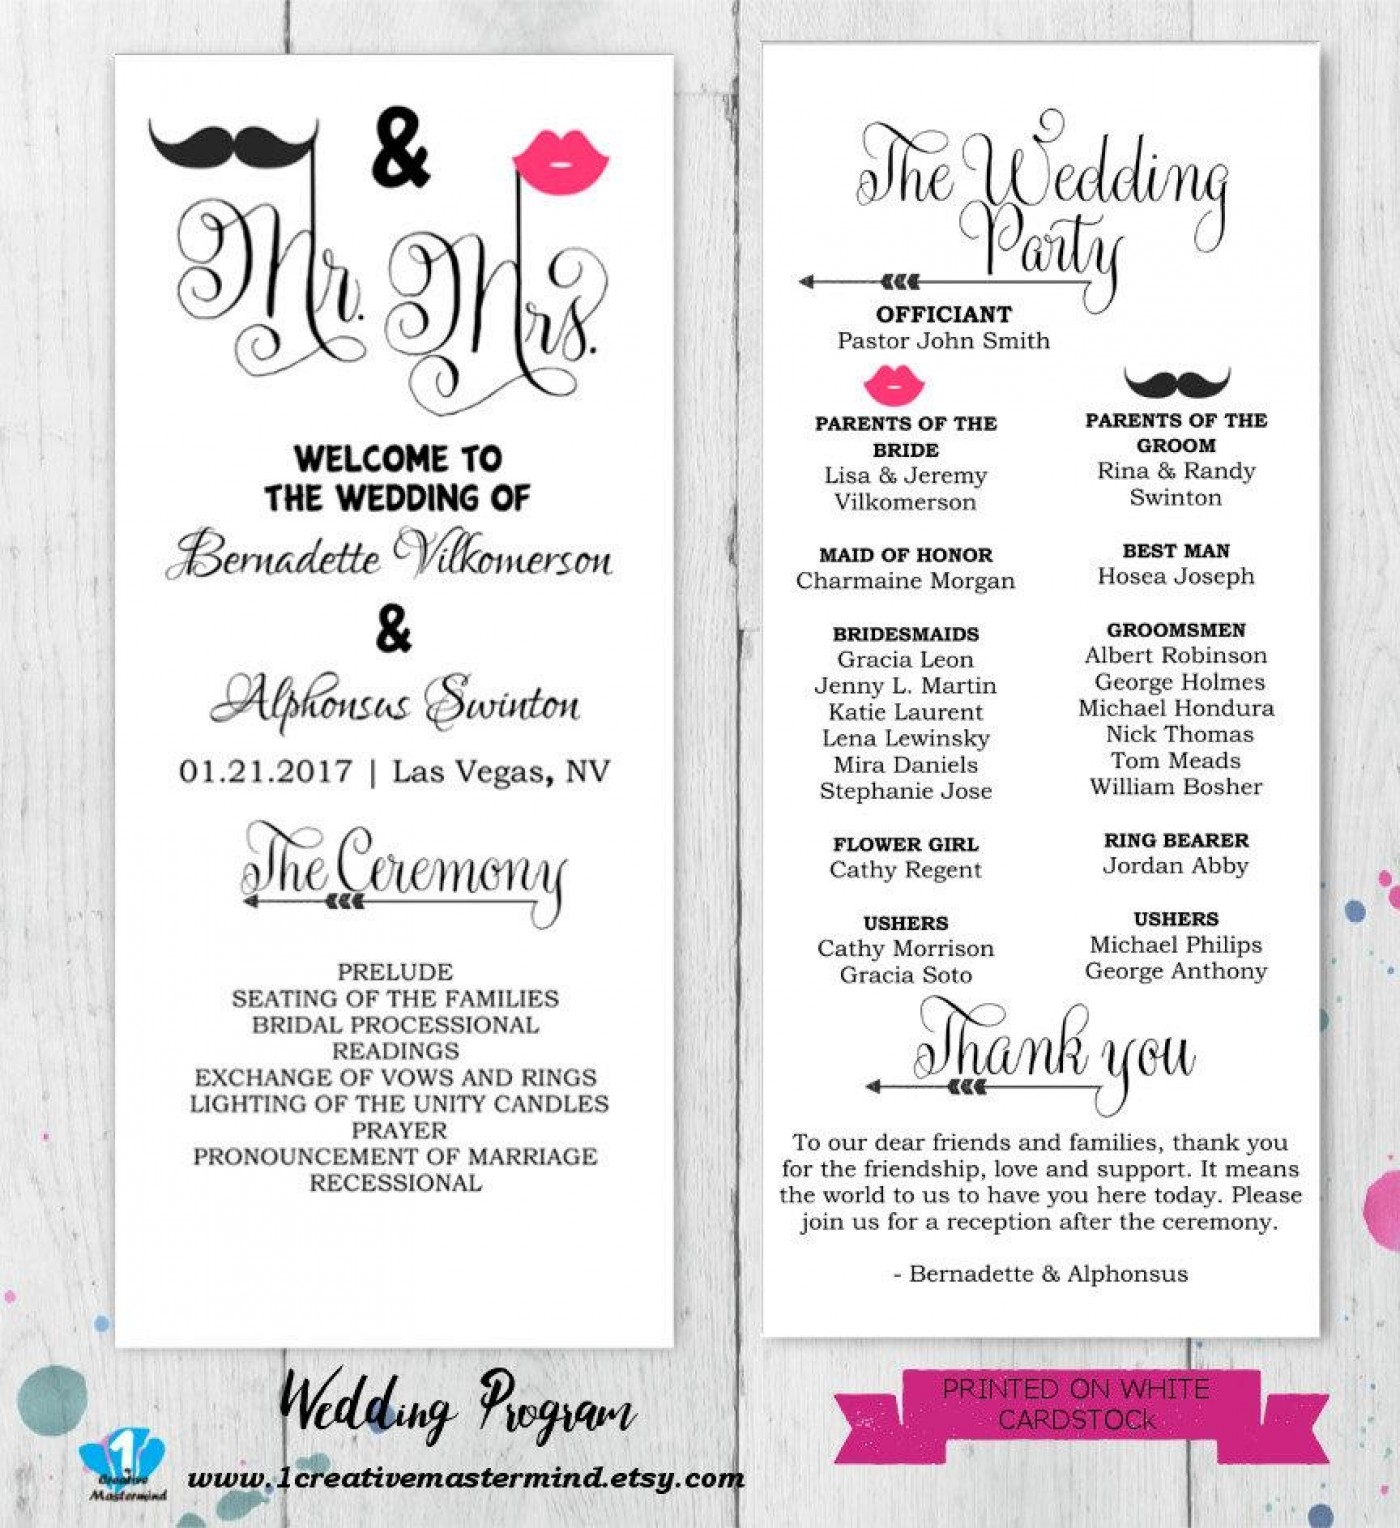 Editable Wedding Program Templates Free Download